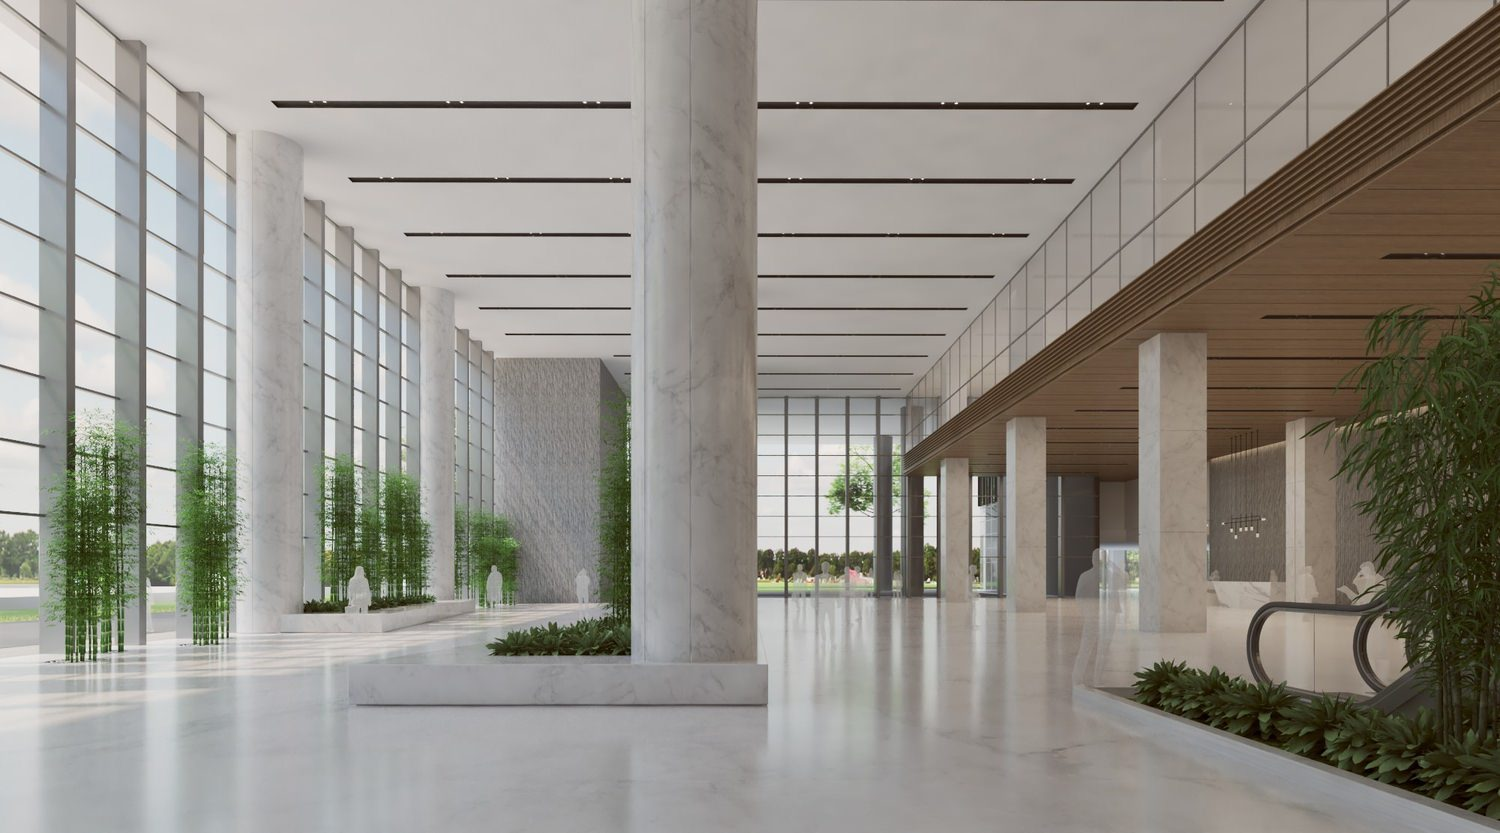 The lobby of a large building that has floor to ceiling windows and white marble wrapped columns in the middle of it.